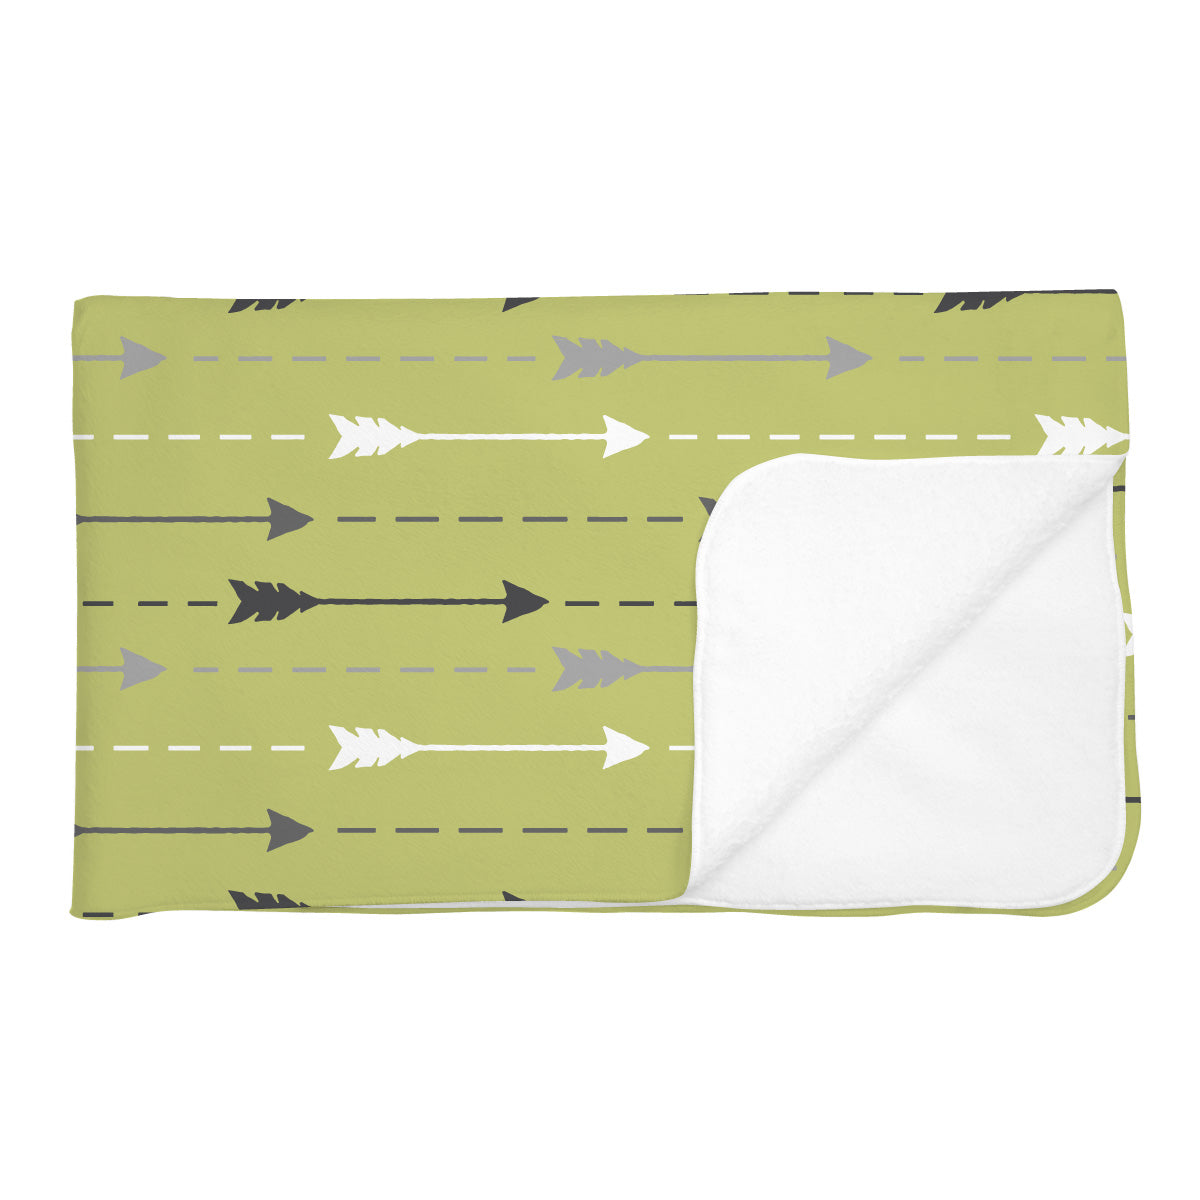 Reed's Chasing Arrows | Adult Size Blanket